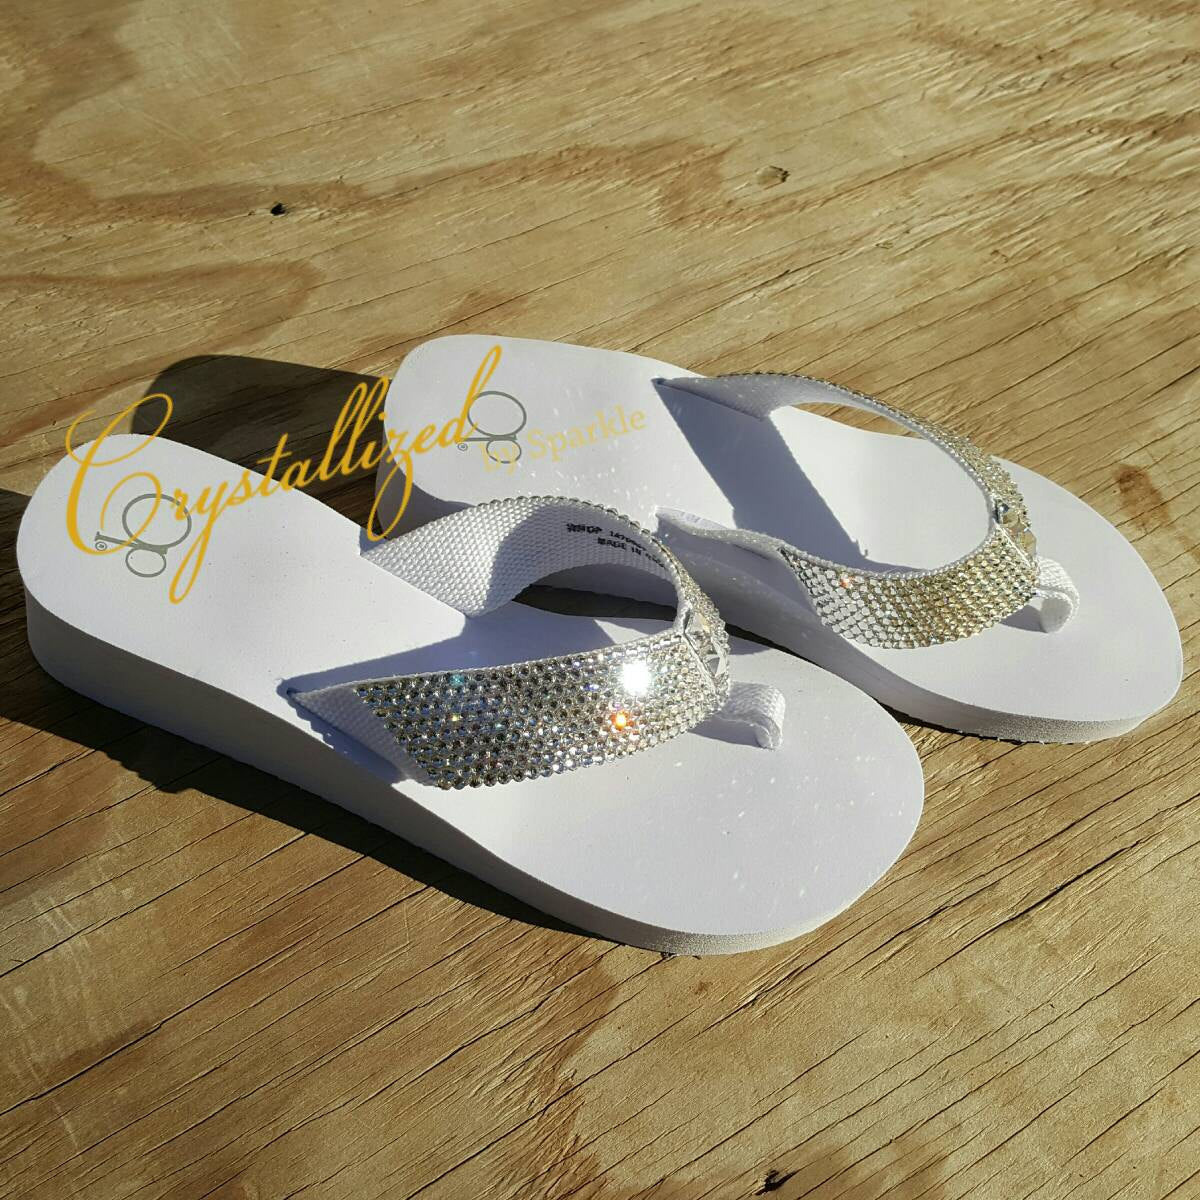 Crystallized Wedge Flip Flops Bling Bling Adorned with Swarovski® Crystals